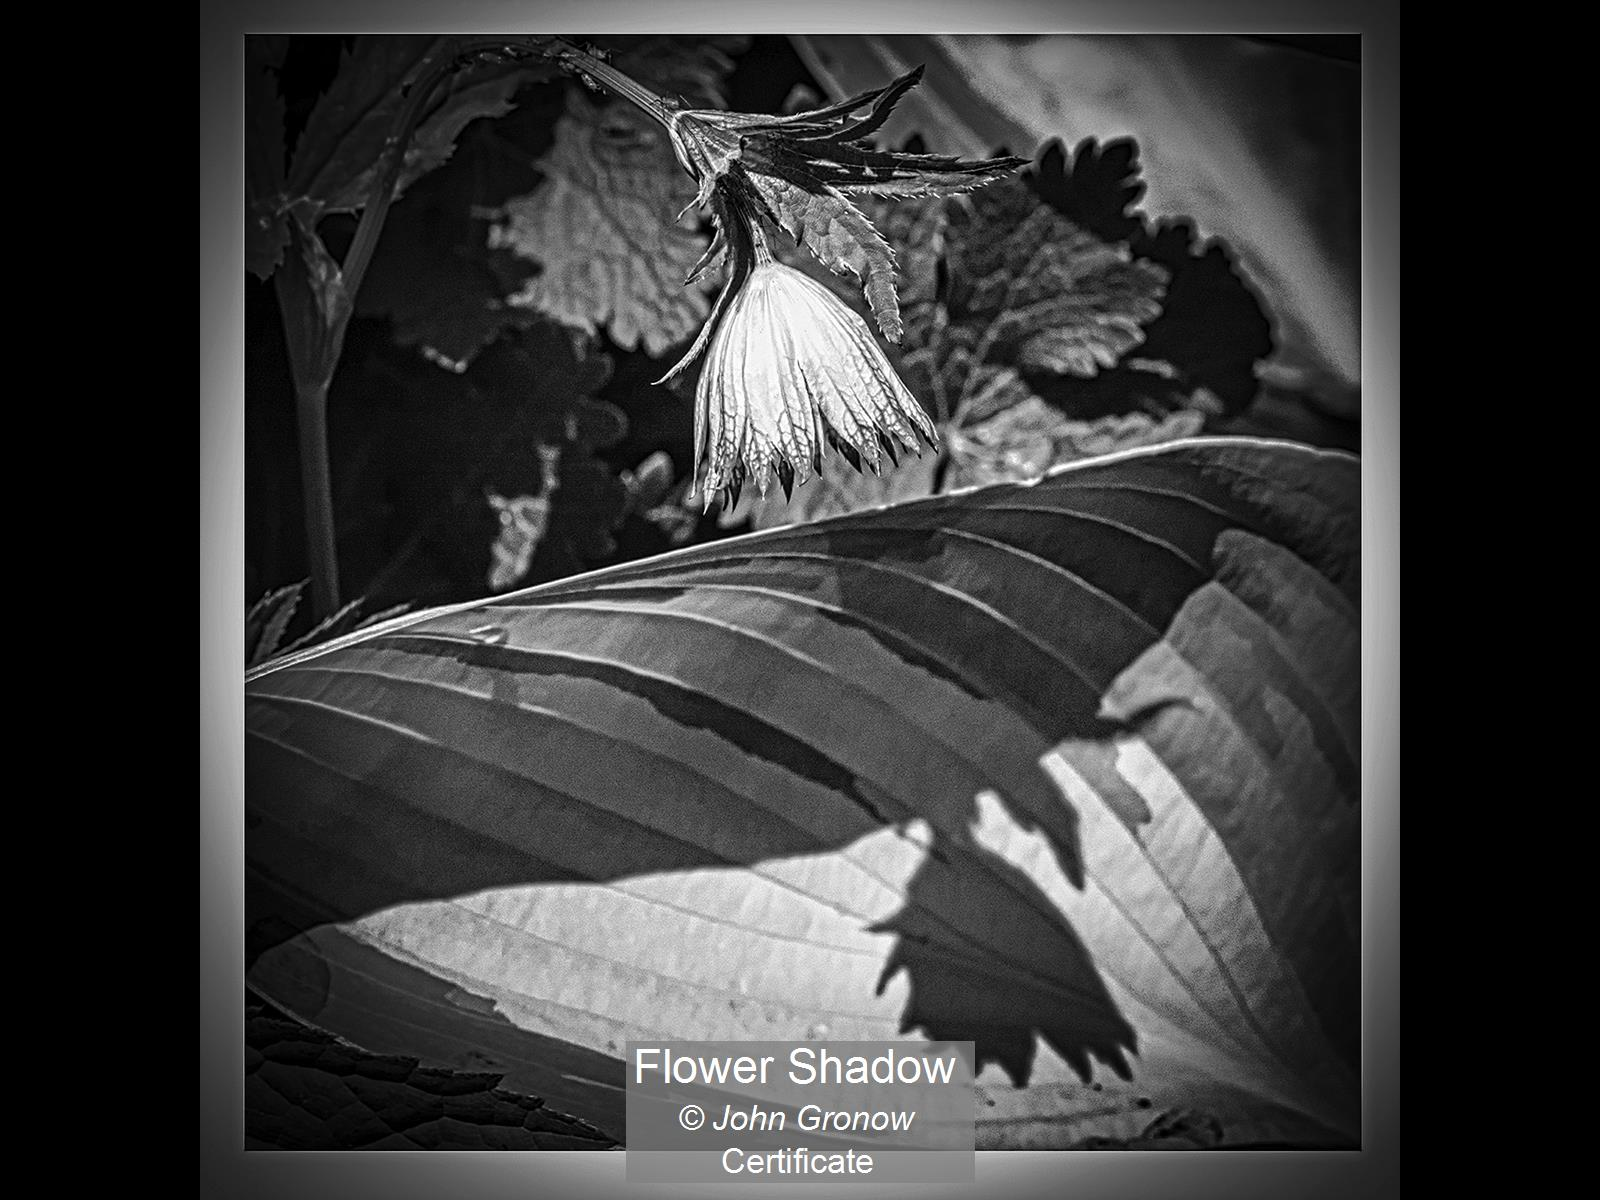 Flower Shadow_John Gronow_Cert